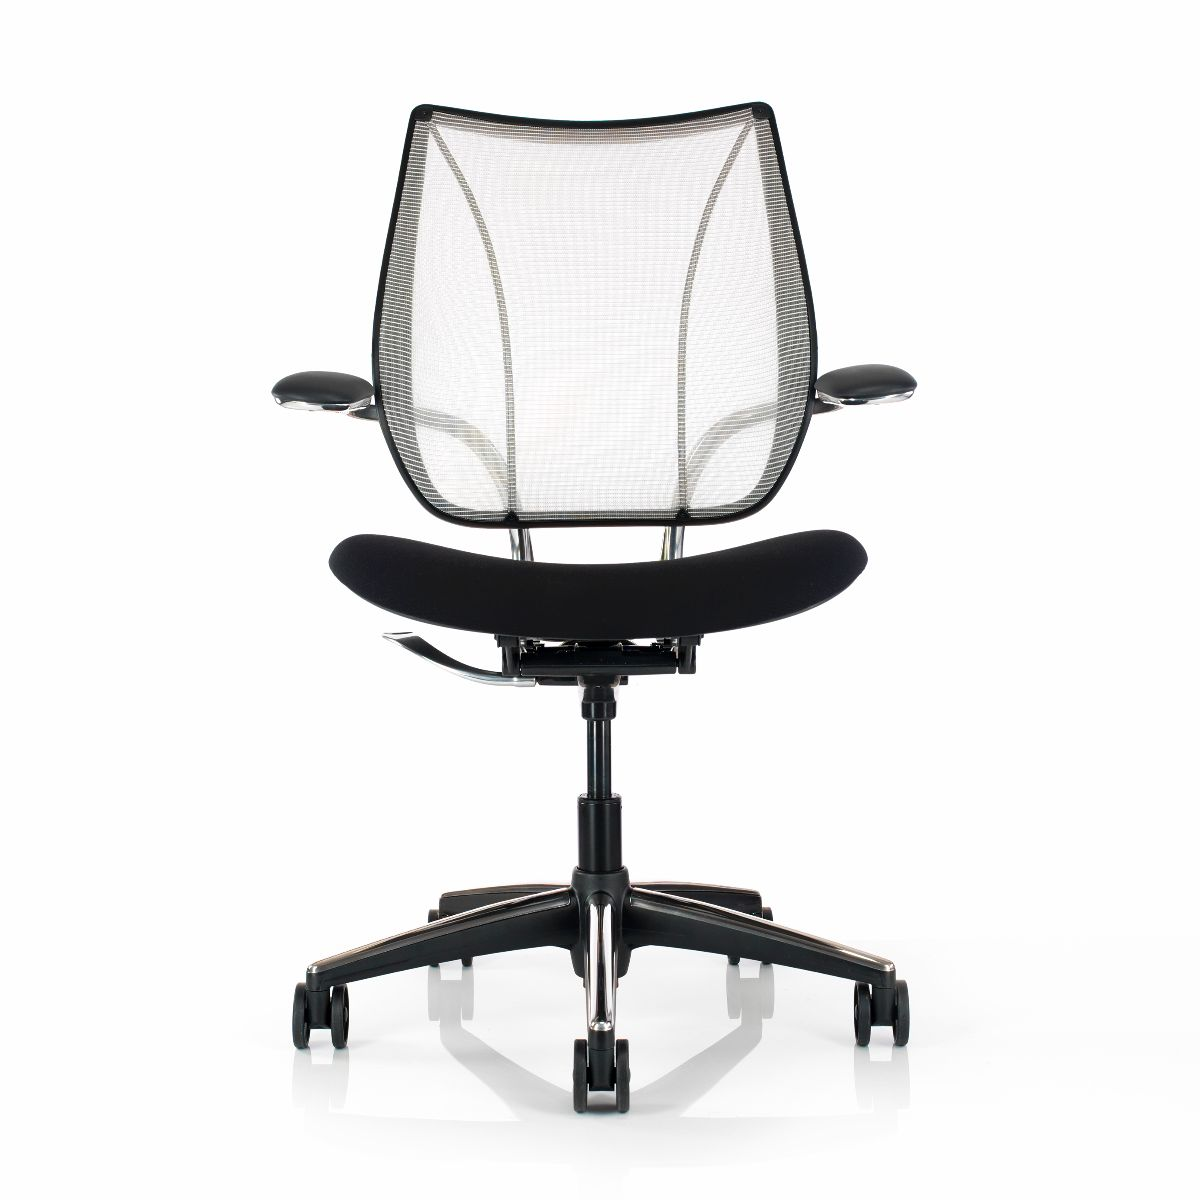 Humanscale Liberty Chair Ergonomic Task Chair Liberty Task Chair Humanscale